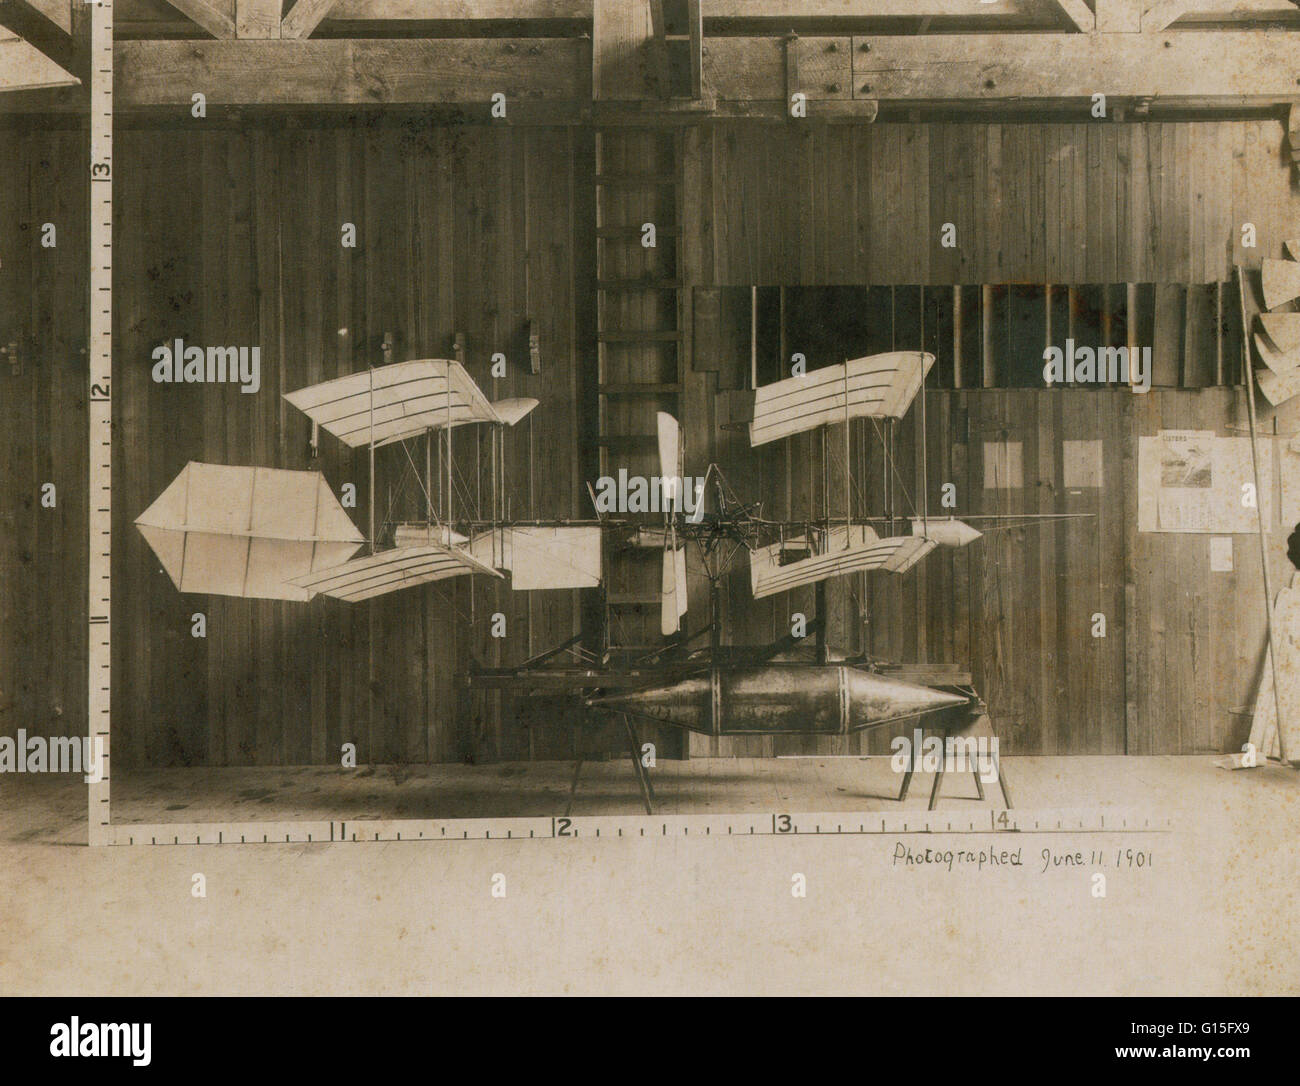 Silver print of a Langley Airplane Model, 1901. - Stock Image